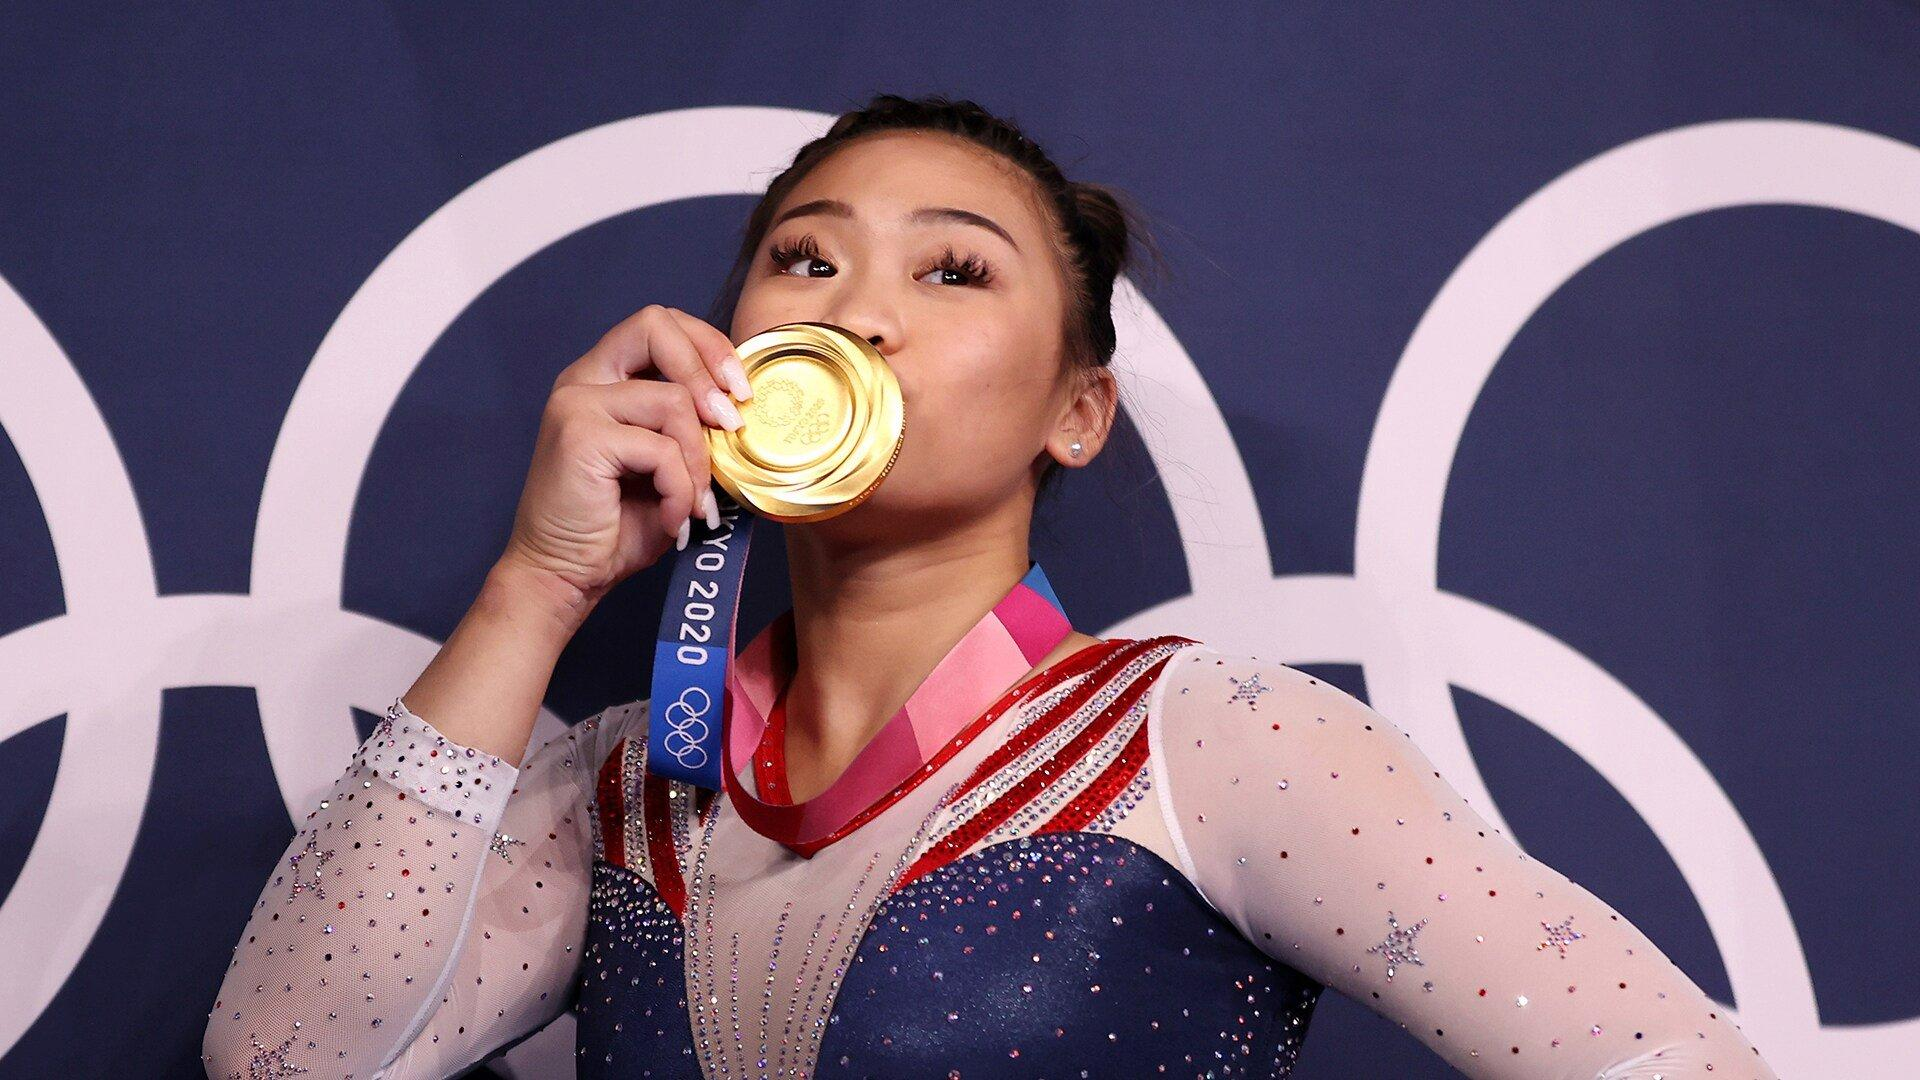 sports.yahoo.com: Sunisa Lee Thanks Supporters in Hmong After Community Rallies Behind Her